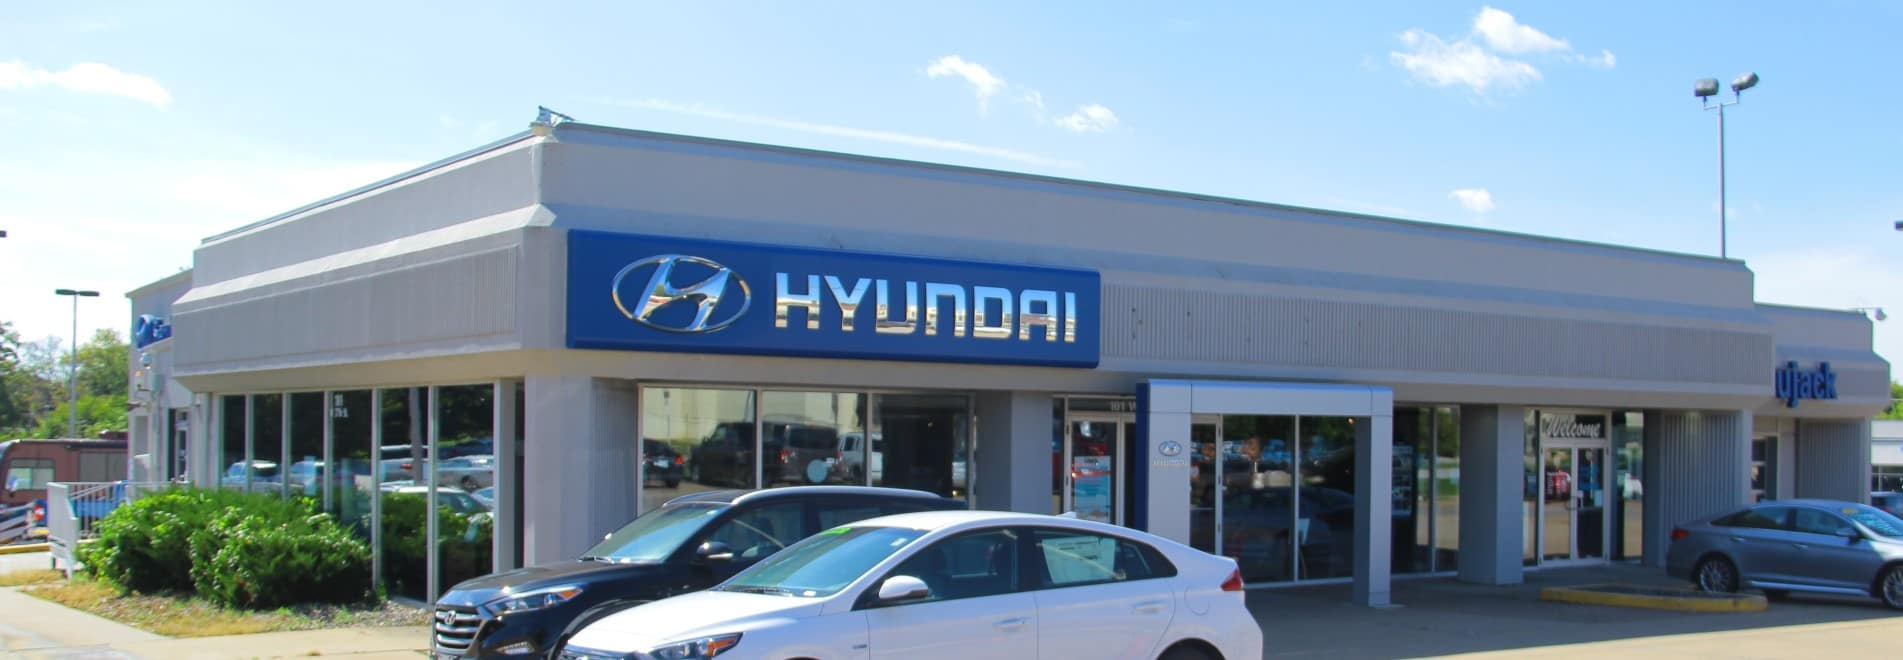 Hyundai Store Front Banner